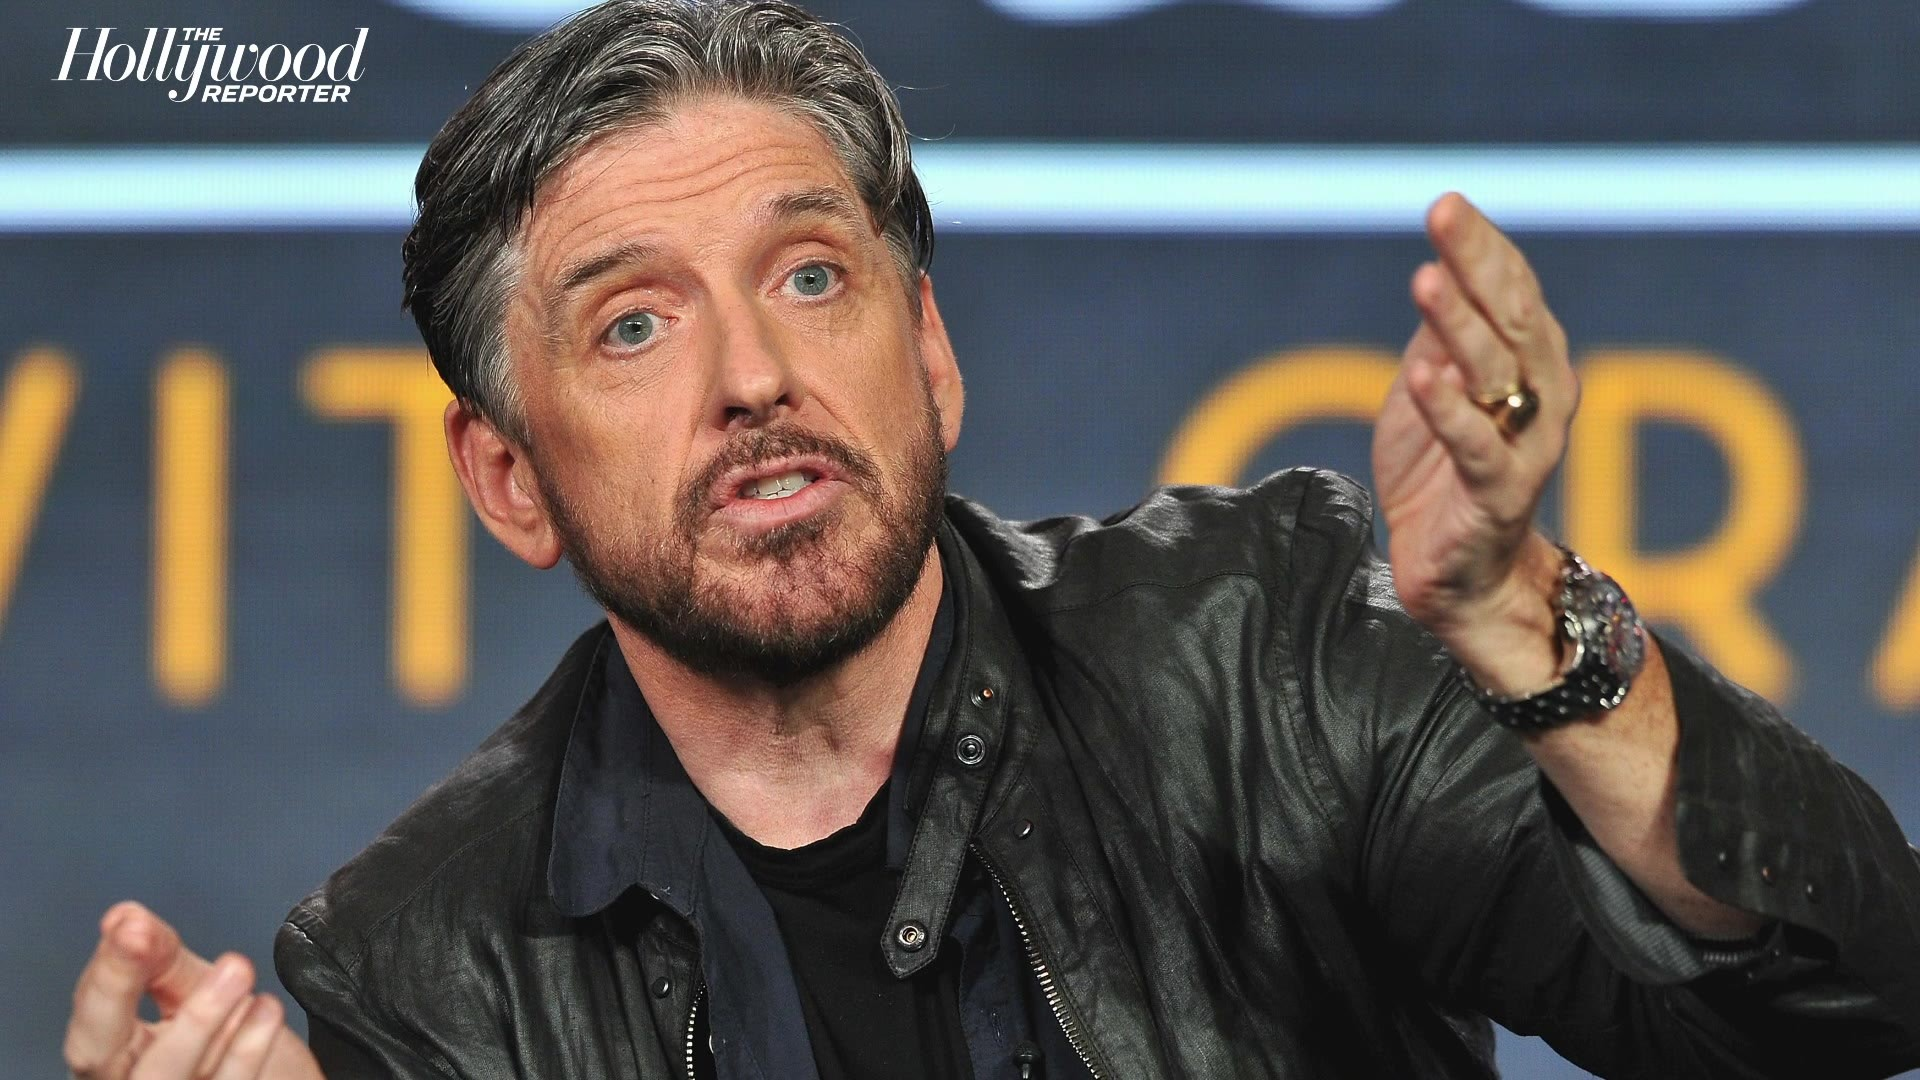 Craig Ferguson's Refusal to Skewer Britney Spears in 2007 Goes Viral Amid Doc Uproar